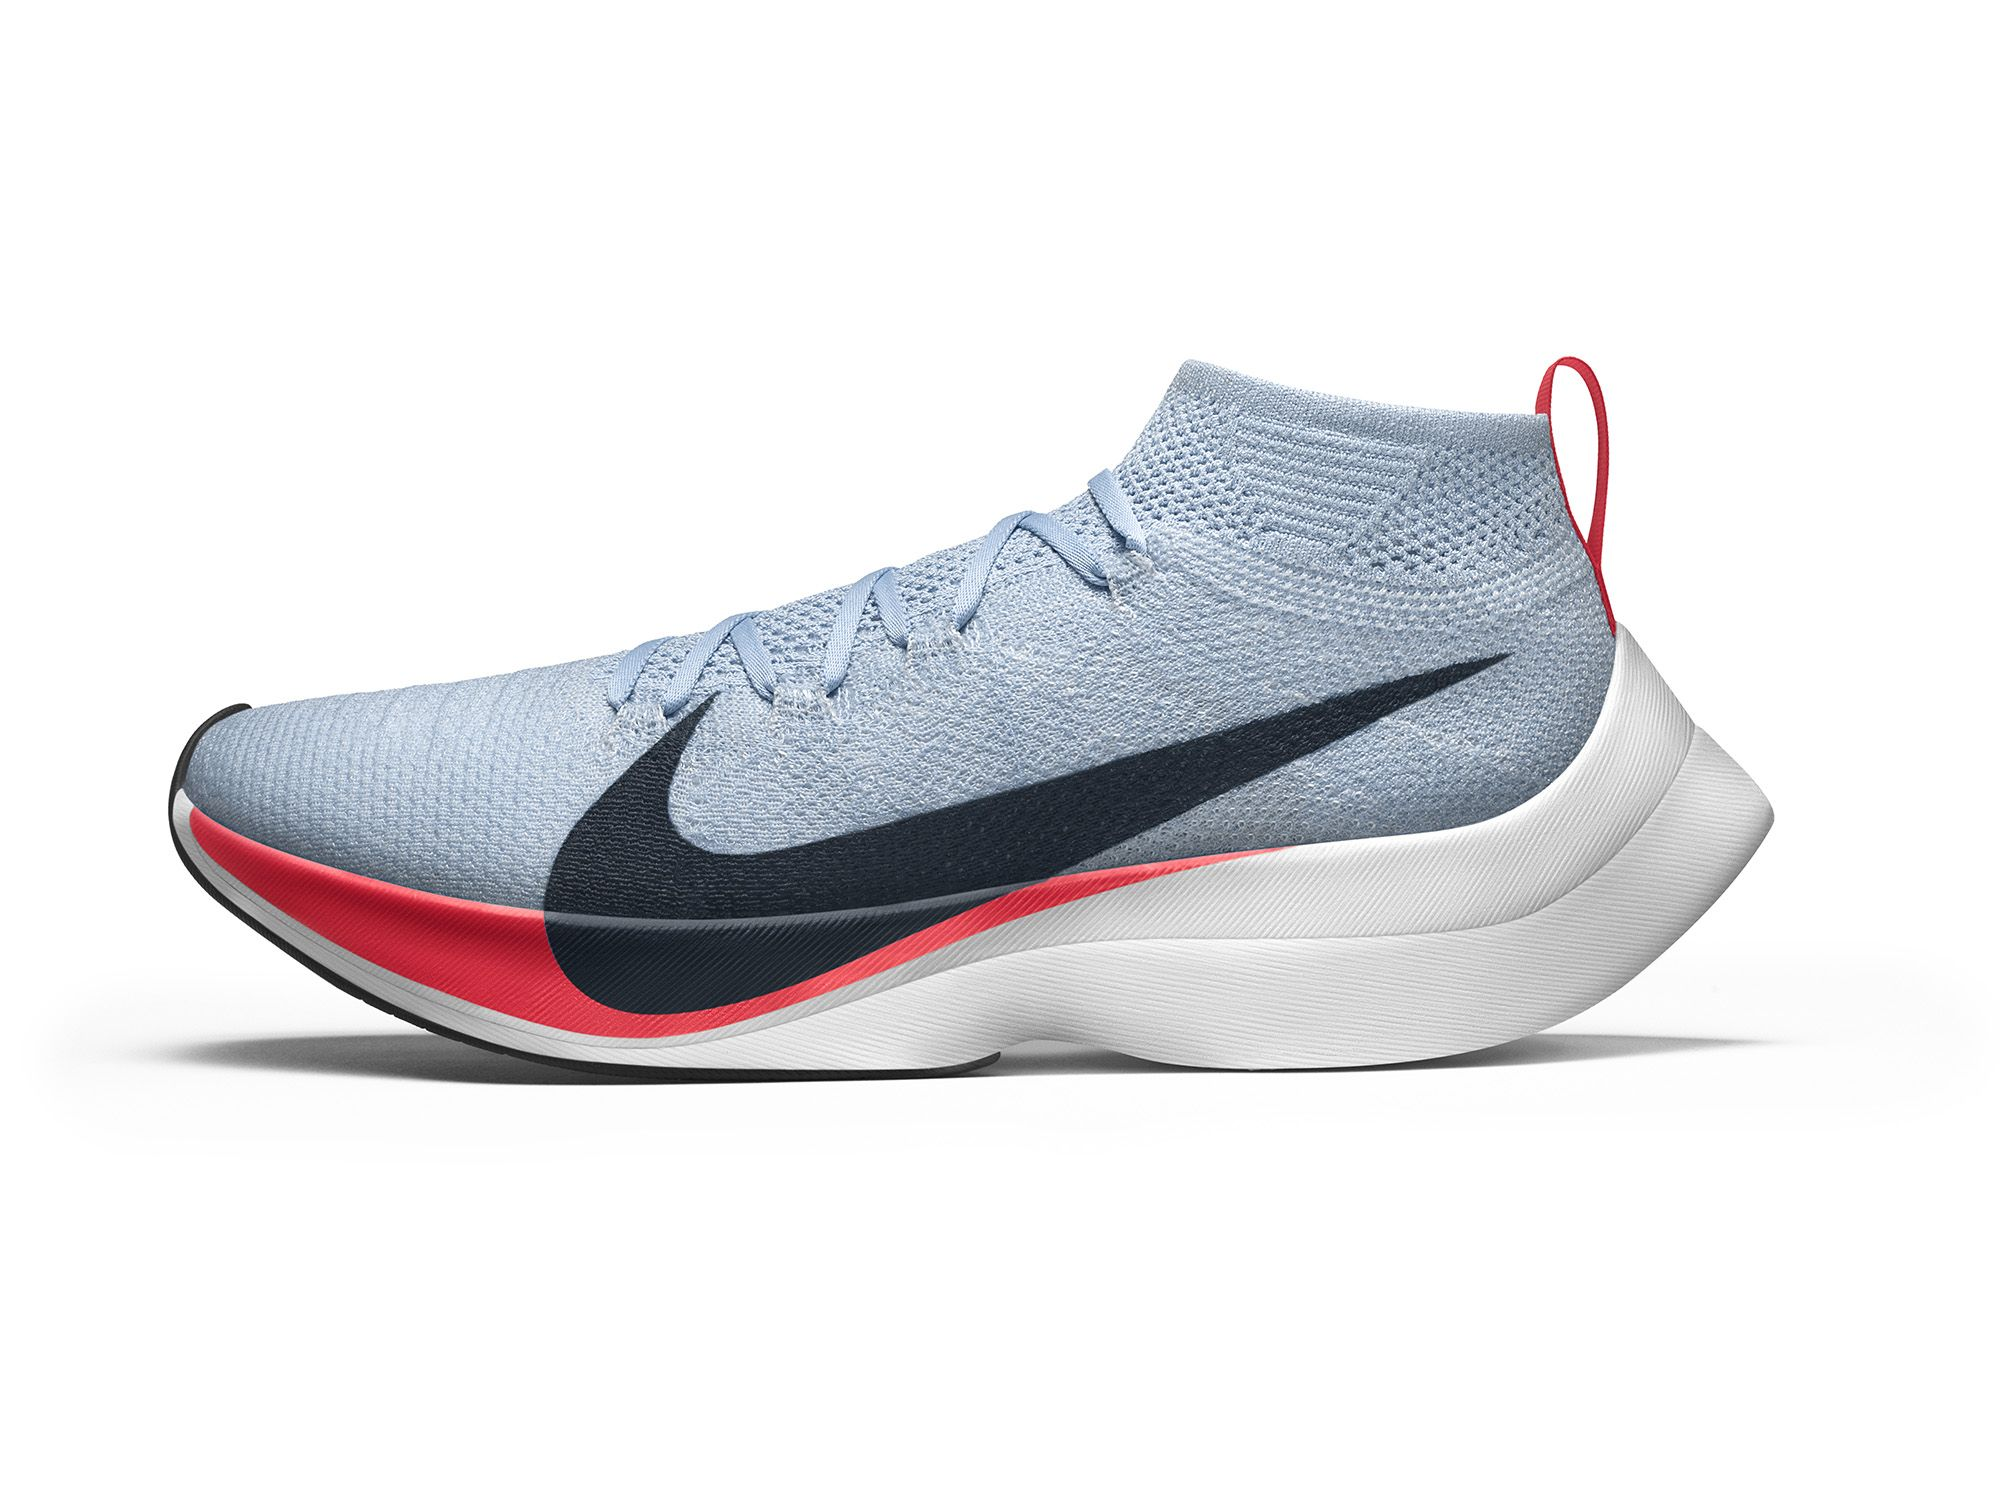 huge discount 83f56 b1003 ... black and red 900888 002 running shoes 5e162 ebay nike unveils zoom  vaporfly elite vaporfly 4 for optimistic sub two hour marathon attempt  08b97 ...